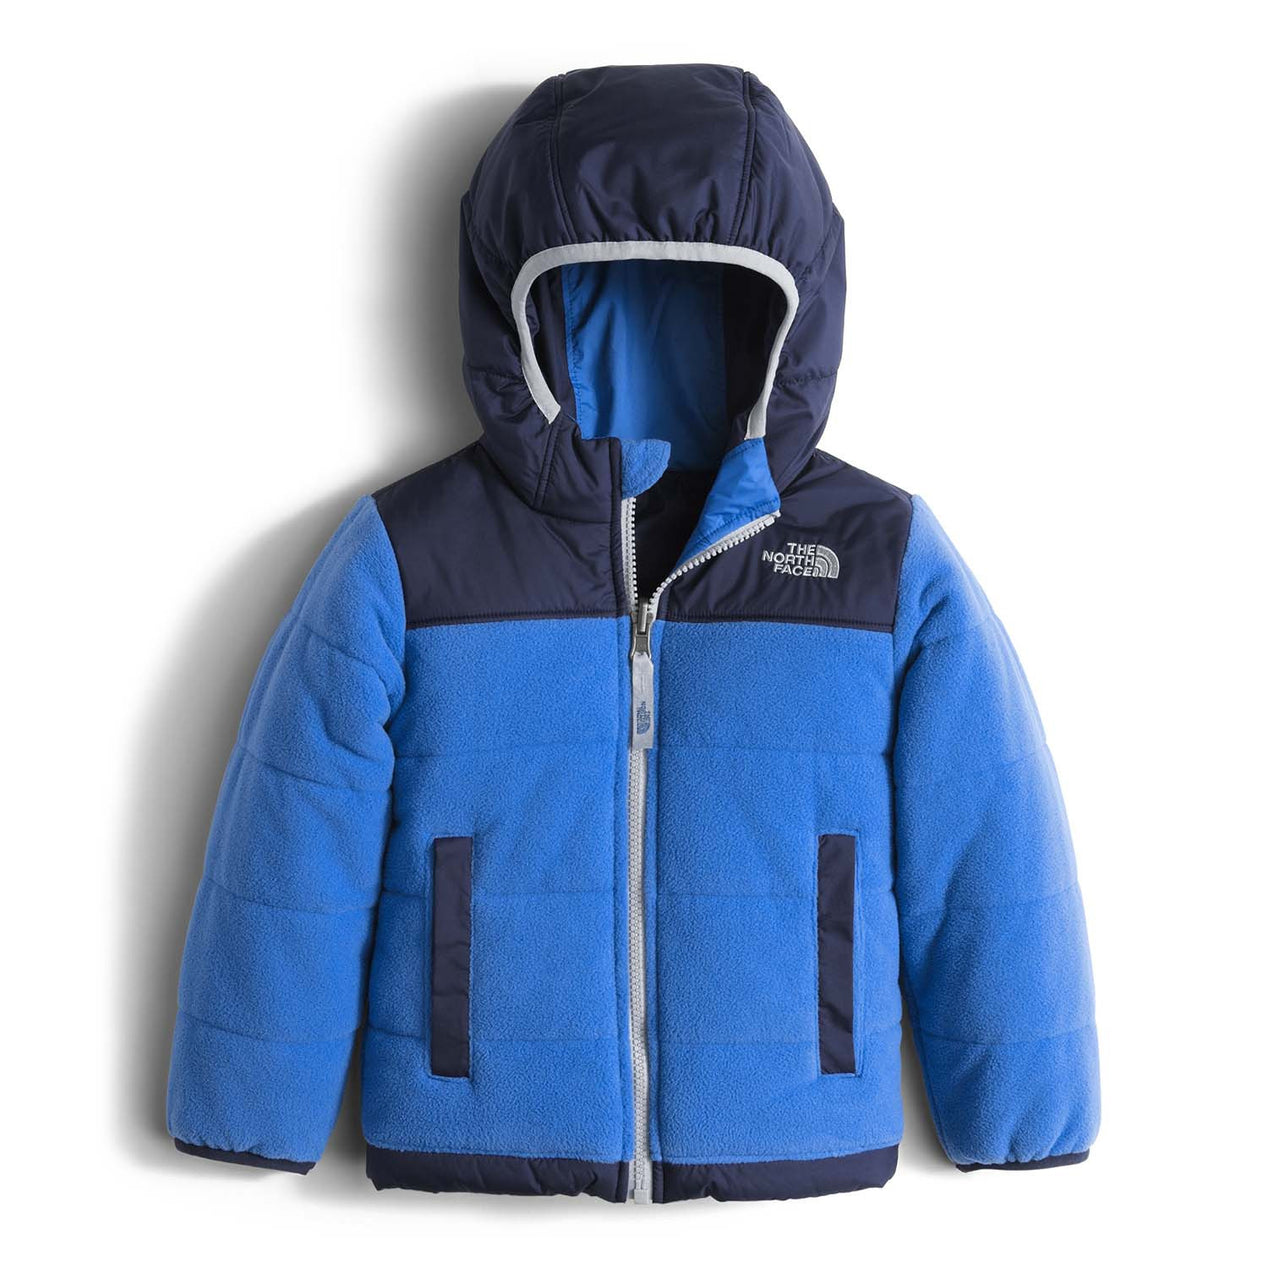 1cfa69aa56 The North Face Toddler Boy s Reversible True Or False Jacket ...